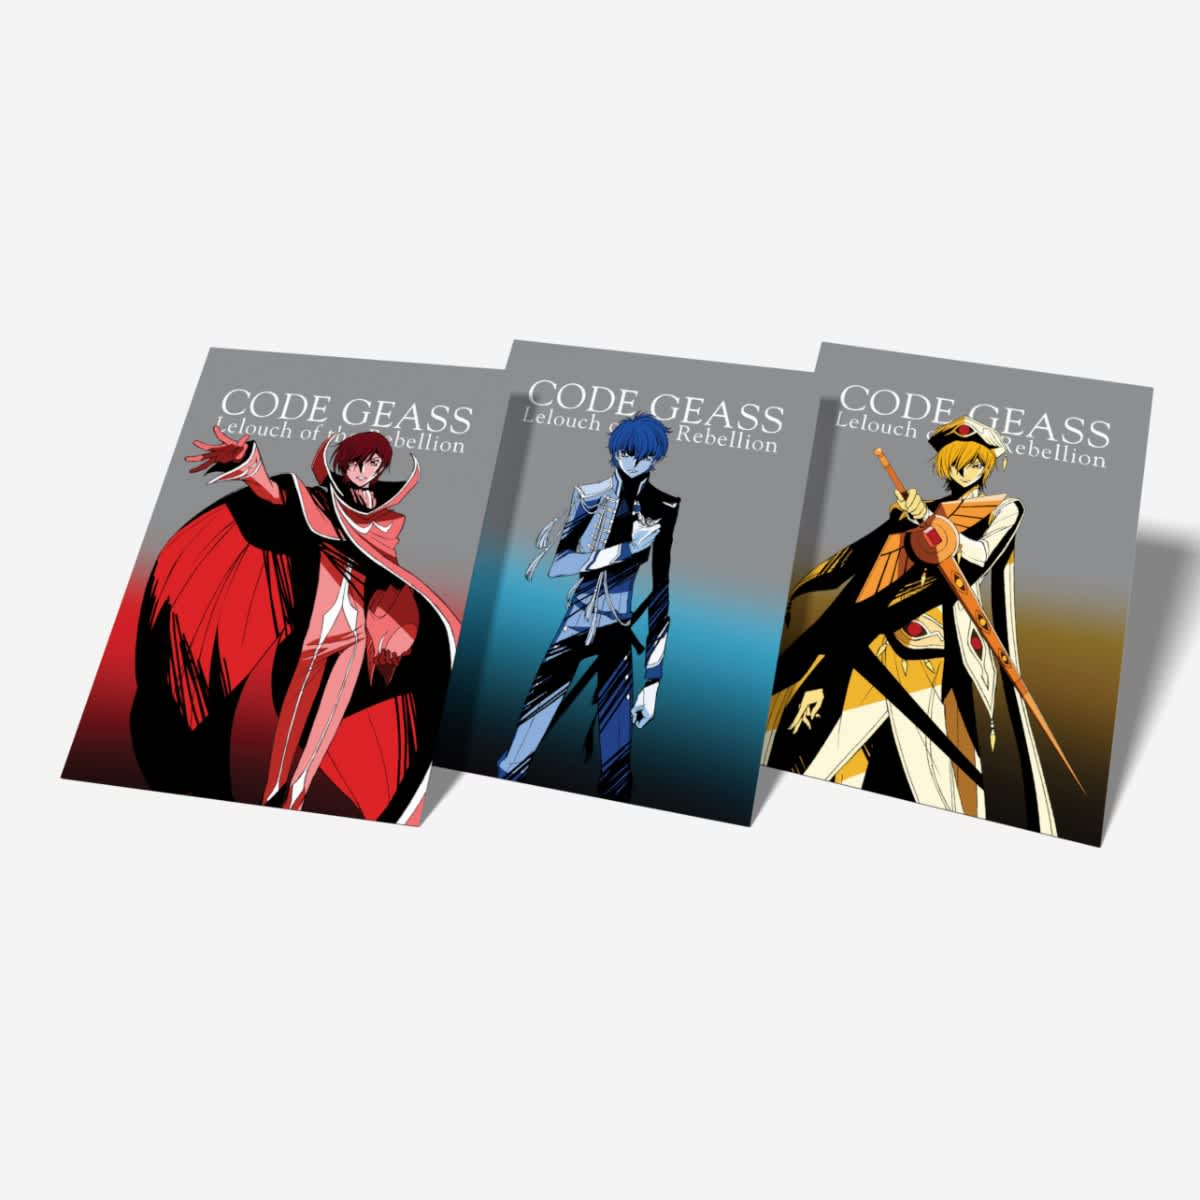 Code Geass - Lelouch of the Rebellion - Trilogy Movie Box Set - I:  Initiation + II: Transgression + III: Glorification - BD (SUB ONLY) |  Home-Video